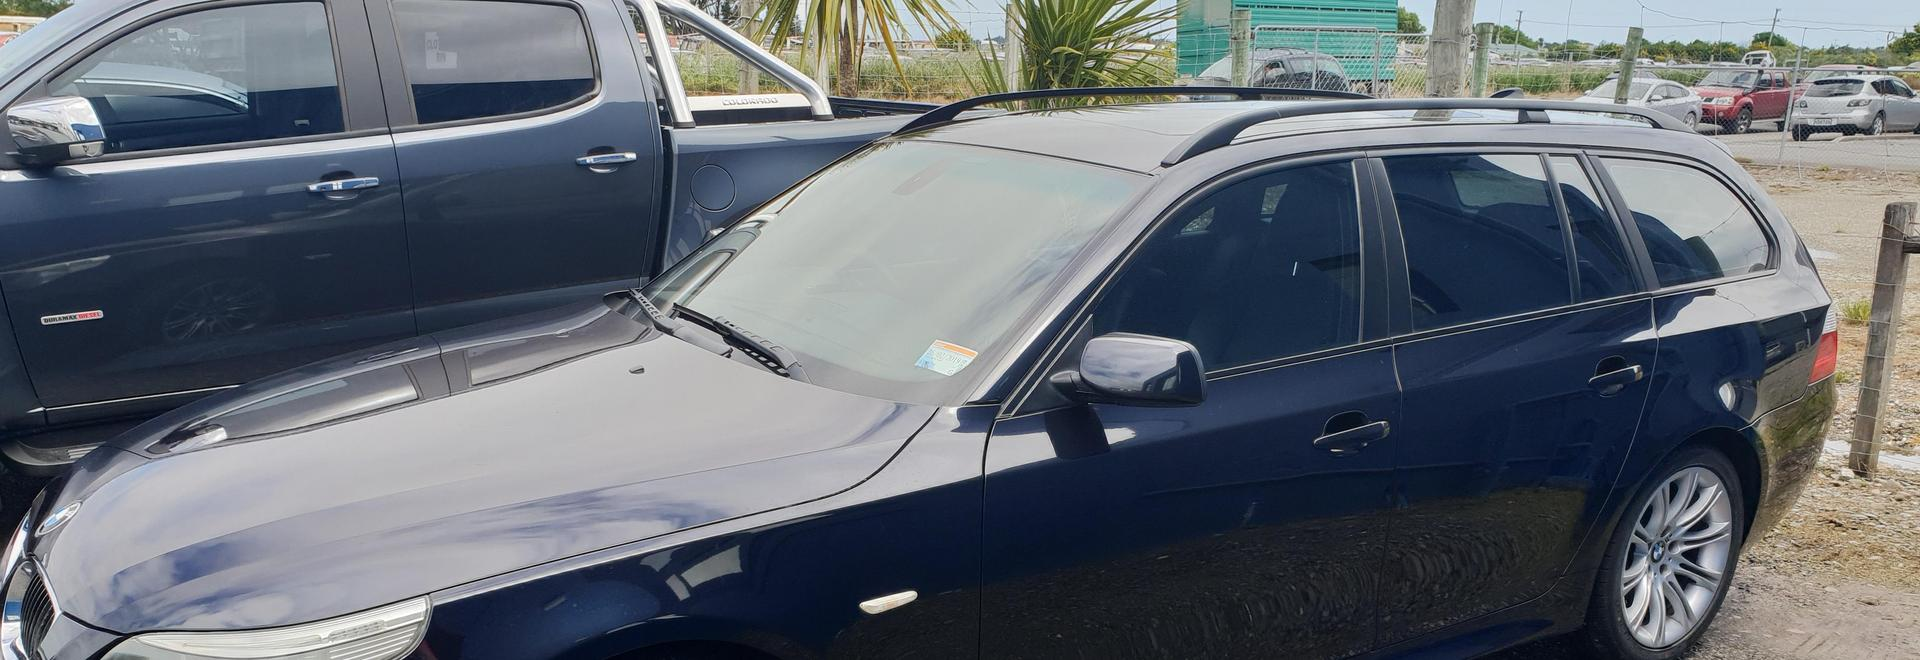 Till end of August receive 10% off all Vehicle Window Tinting and 15% Off all Residential Window Tinting